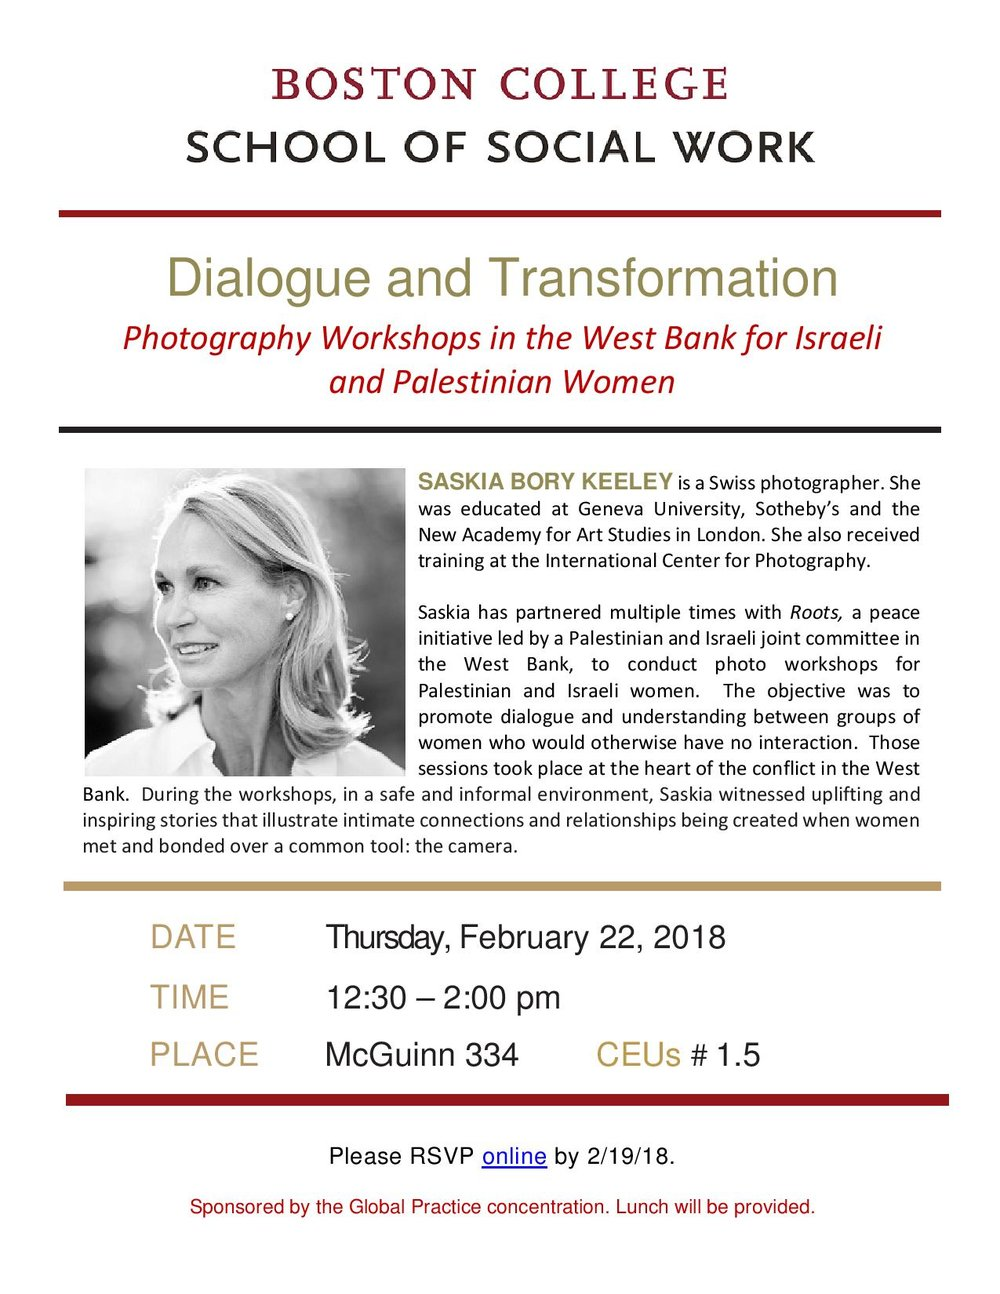 Dialogue and Transformation: Photography Workshops for Israeli and Palestinian Women in the West Bank  - Boston College